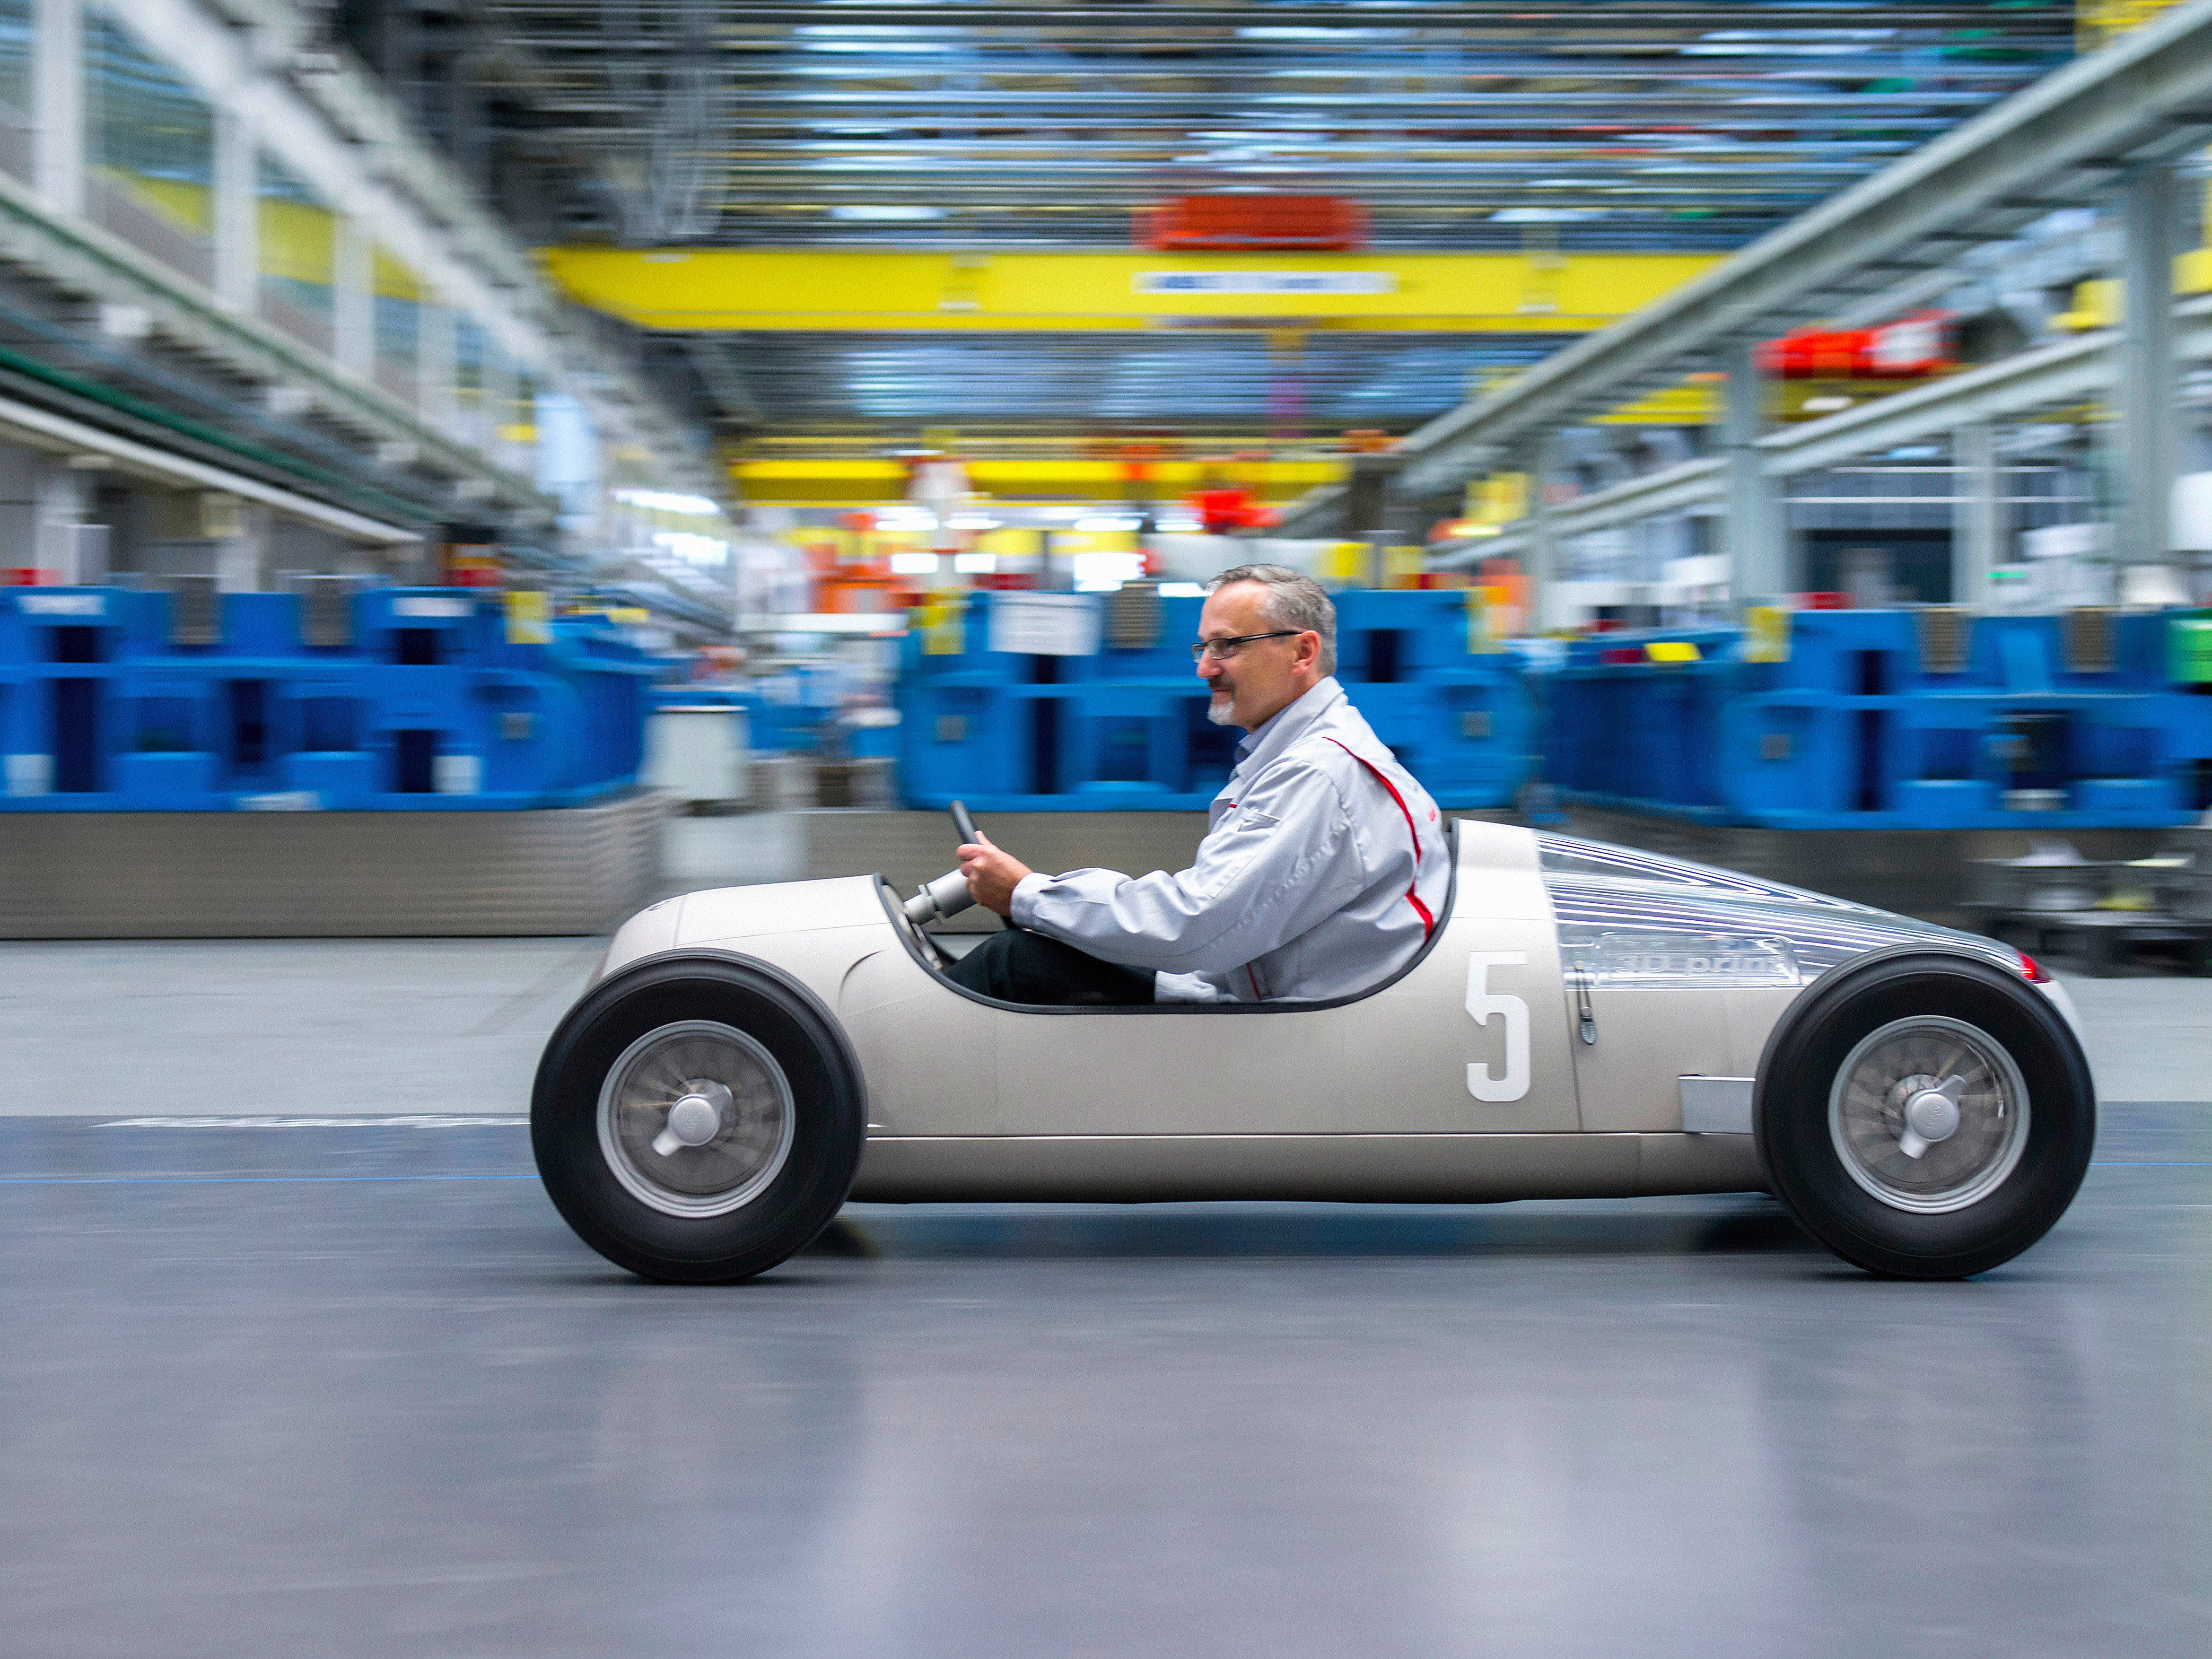 Check out Audi's adorable scale model Type-C racer